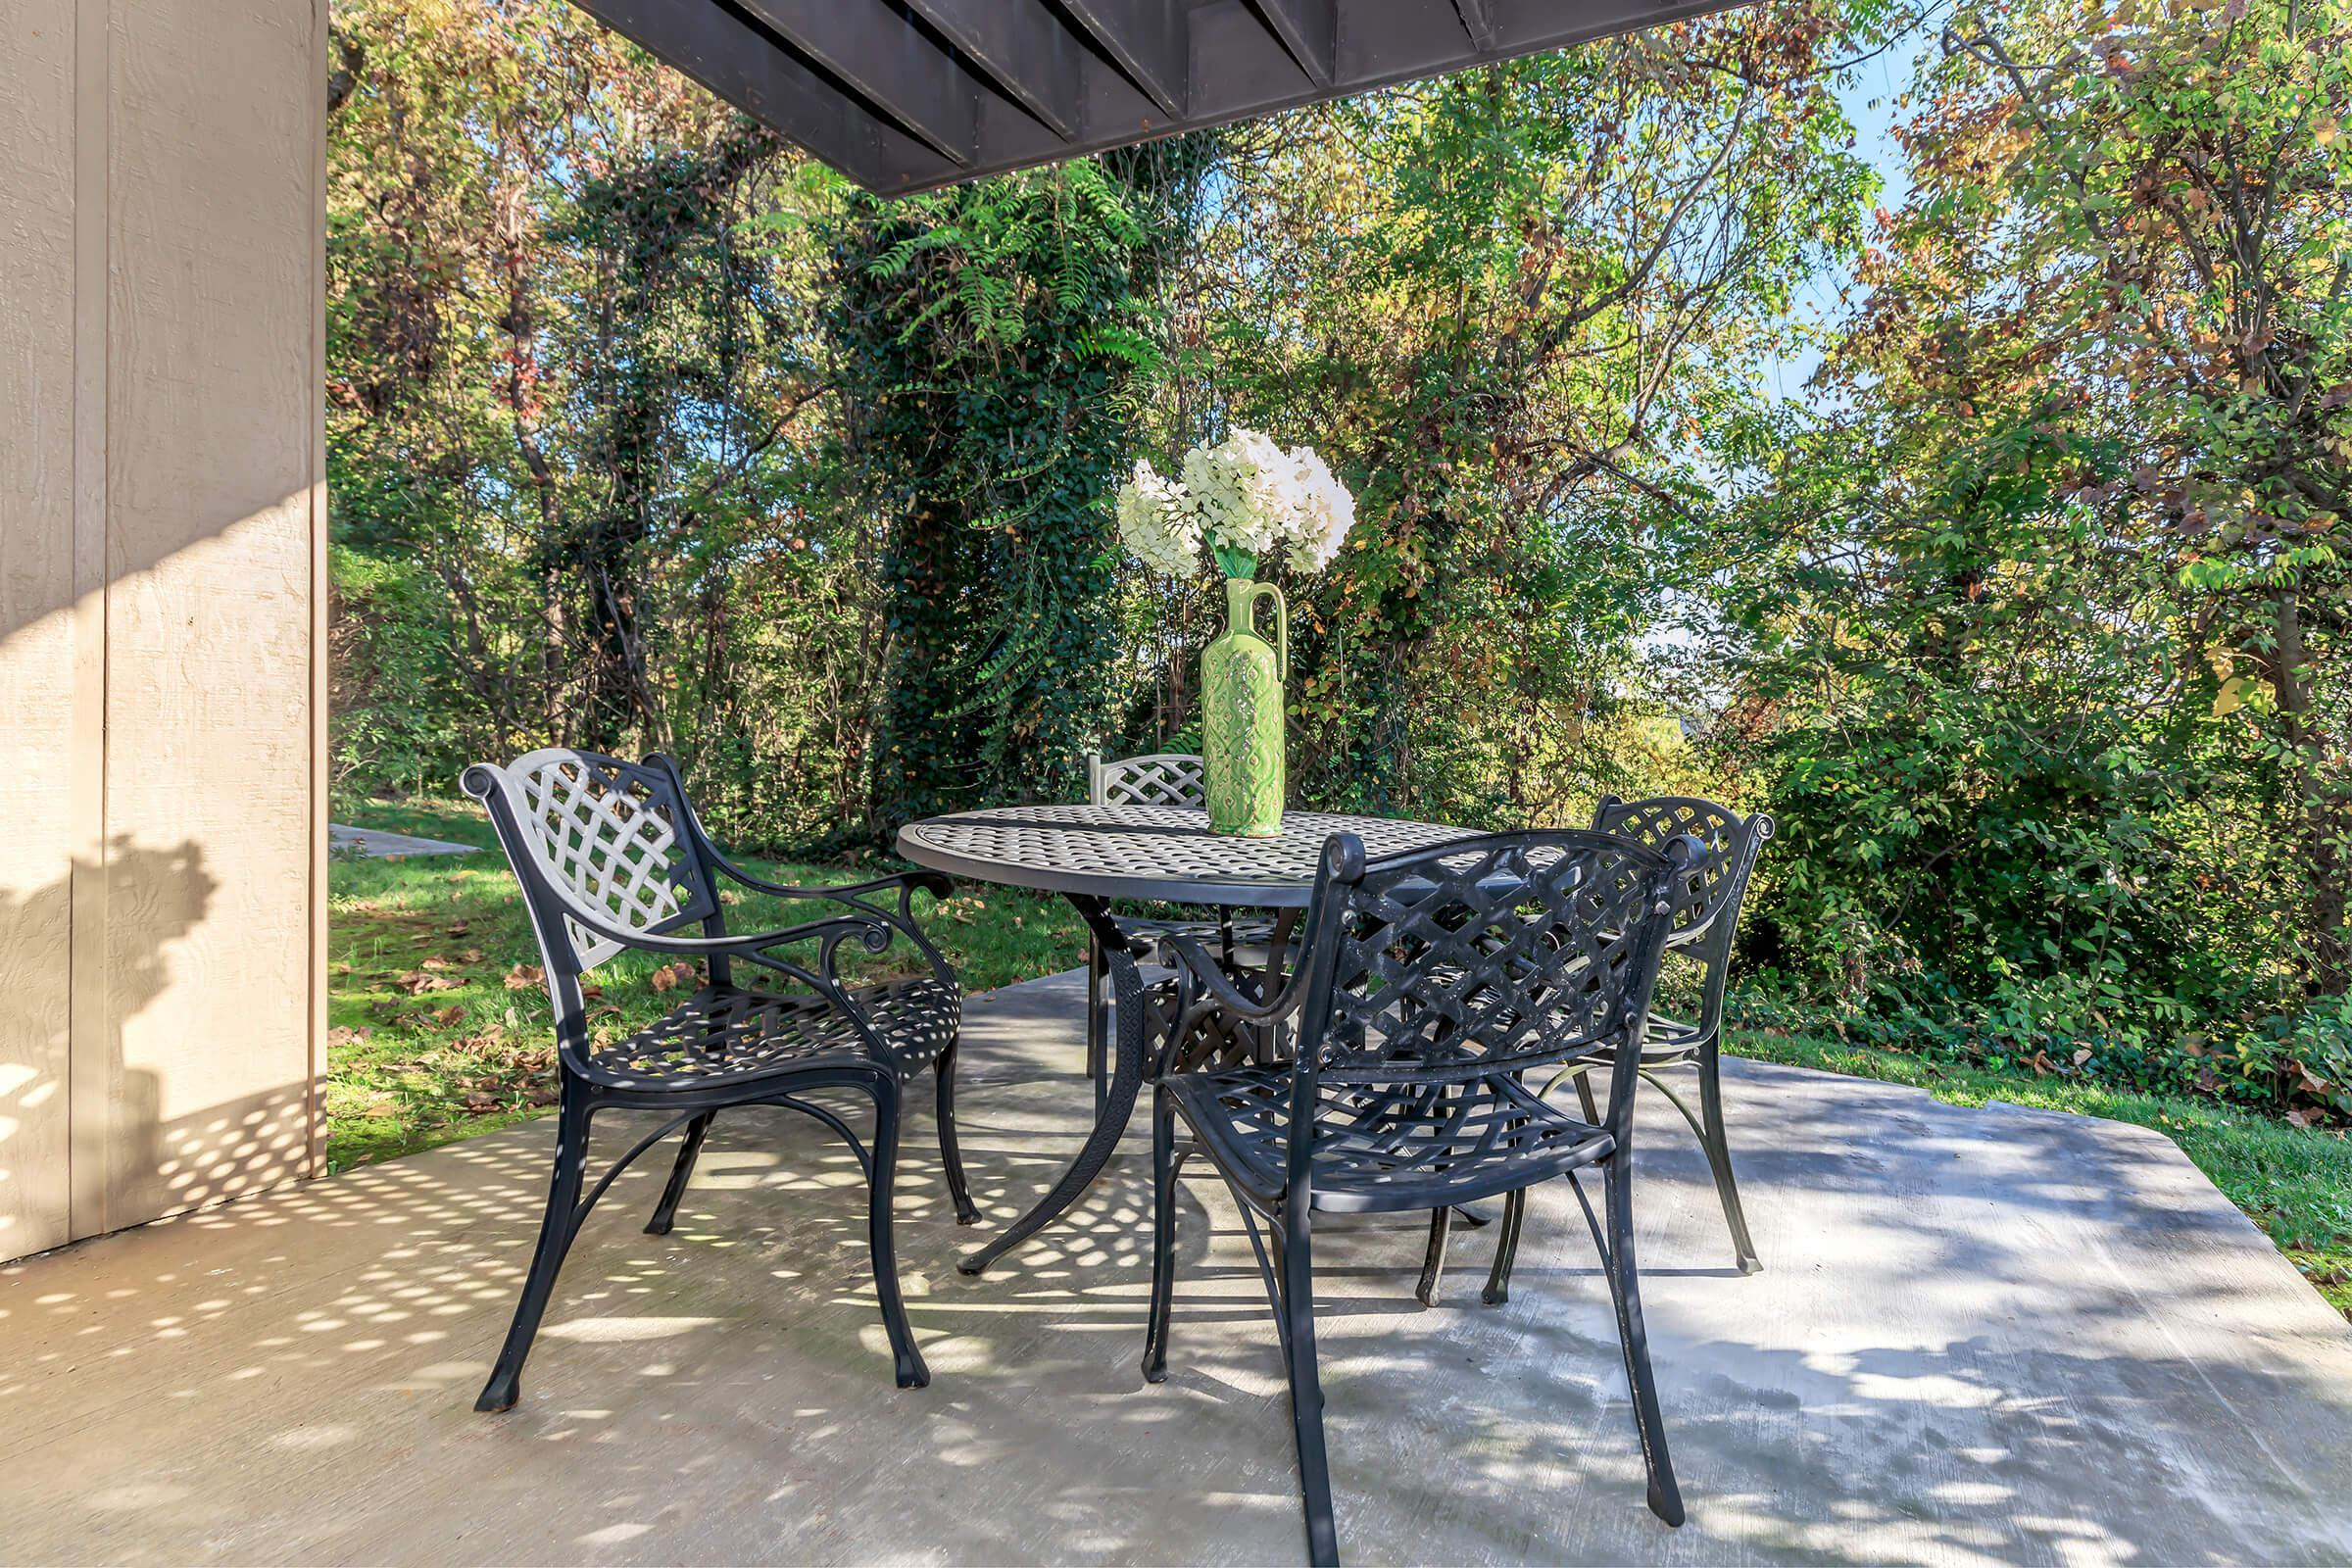 EXPANSIVE OUTDOOR LIVING AREA AT KINGSTON POINTE APARTMENTS